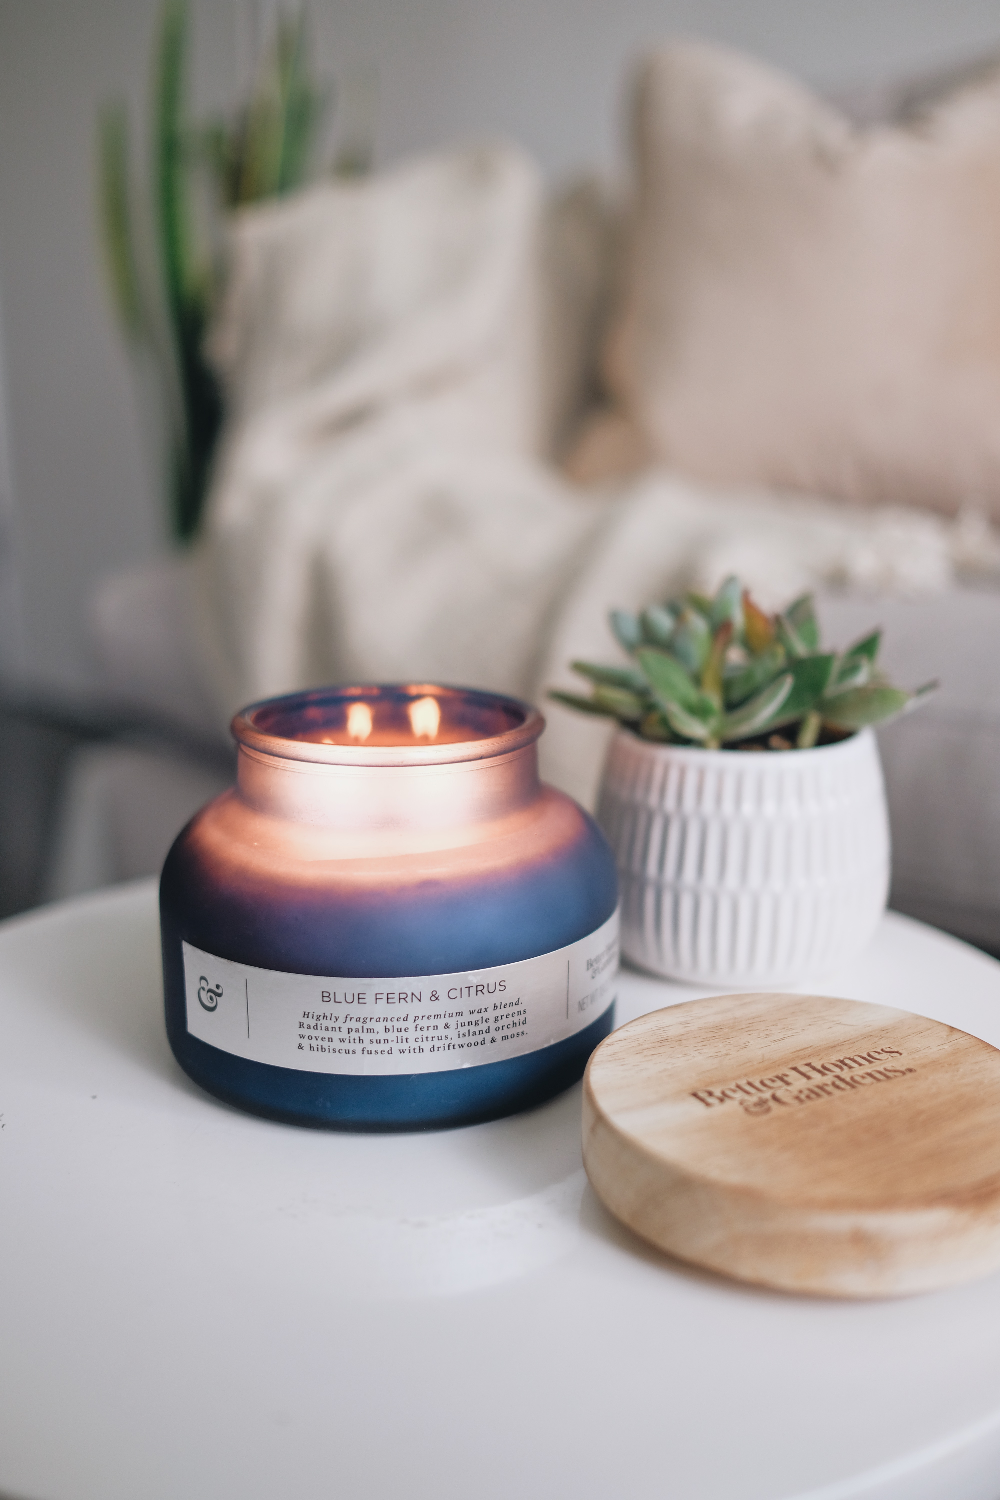 41b967080399cd021c1cea70064a4af2 - Better Homes And Gardens Sandalwood And Vanilla Candle